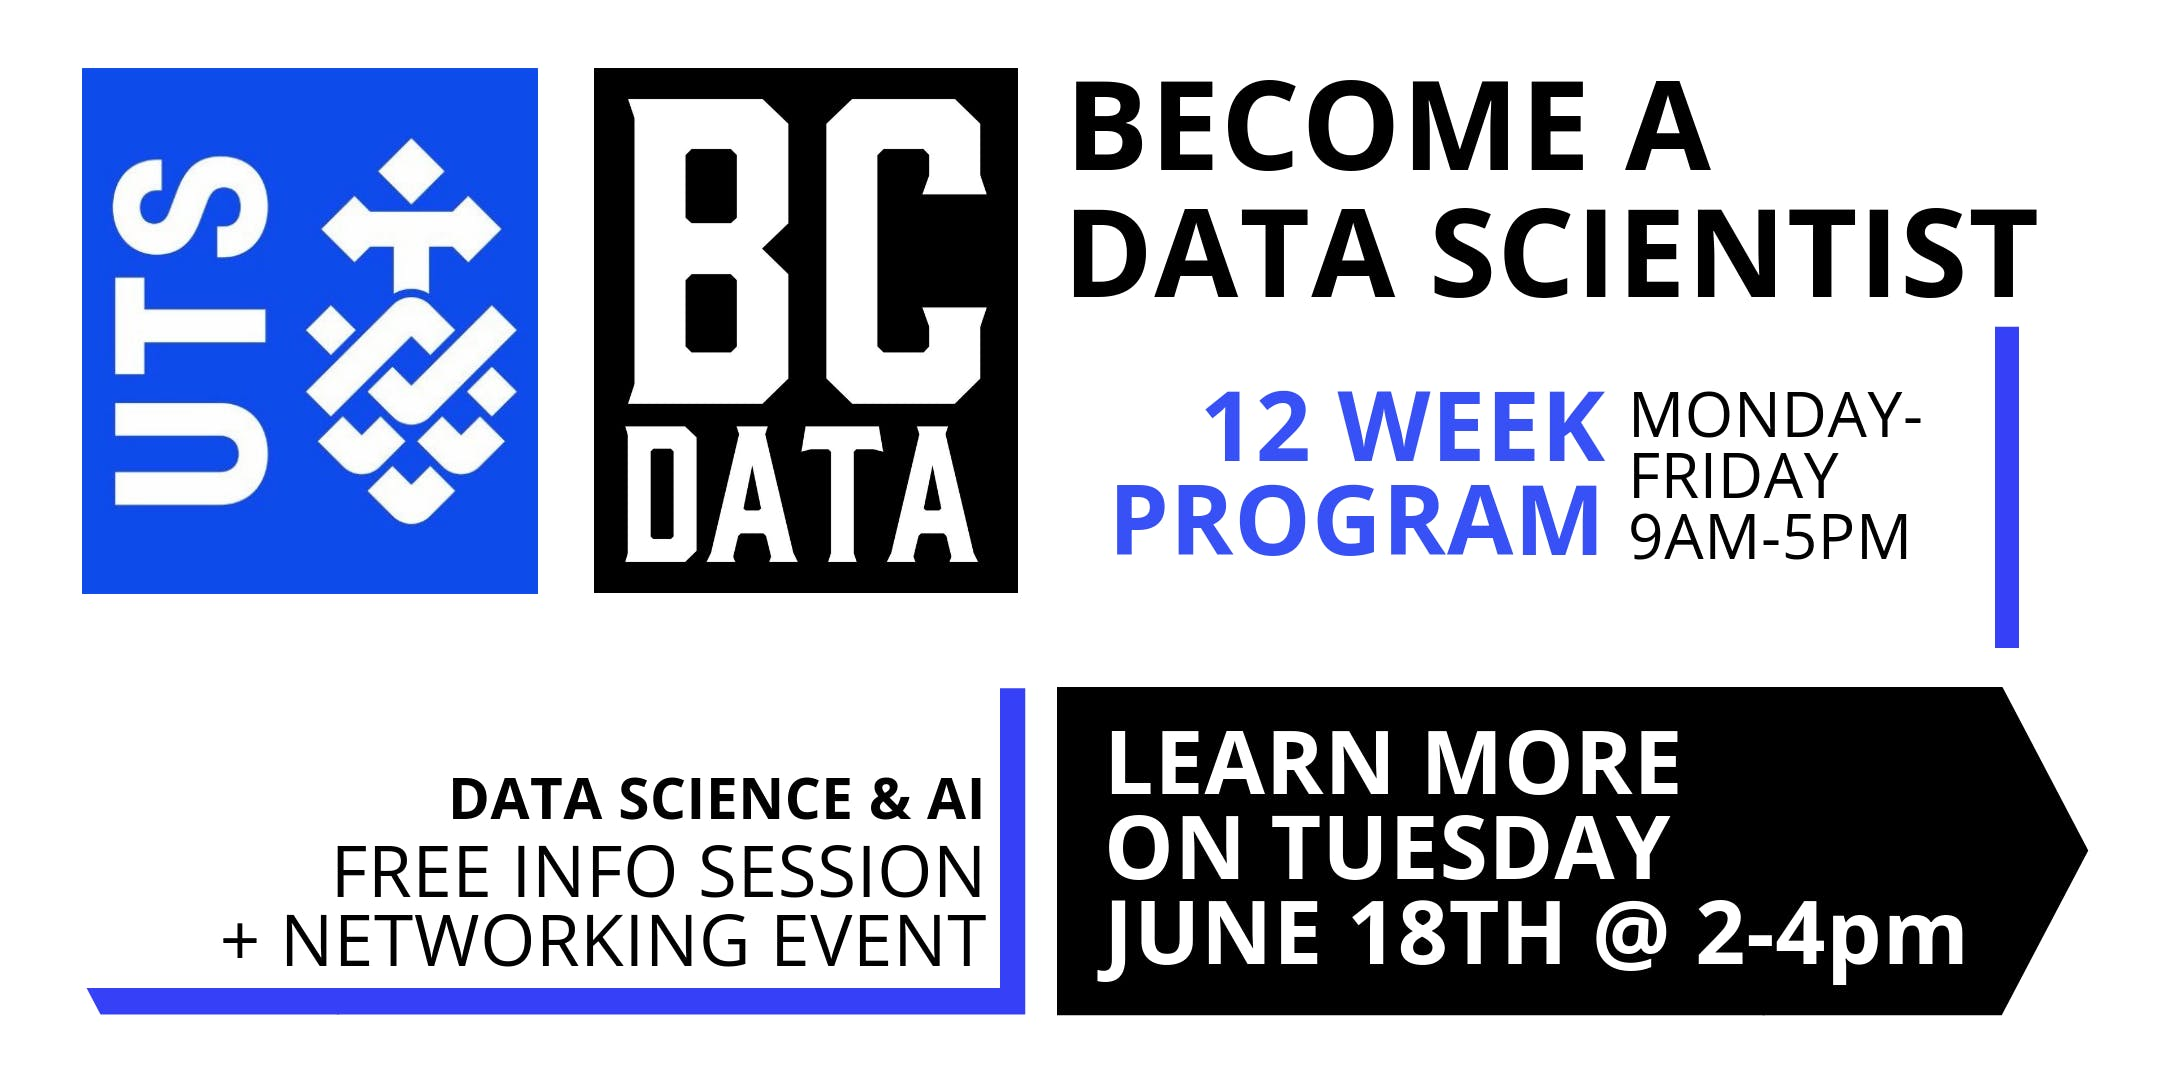 UTS Data Science & AI 12-week Program – Launch & Info Session